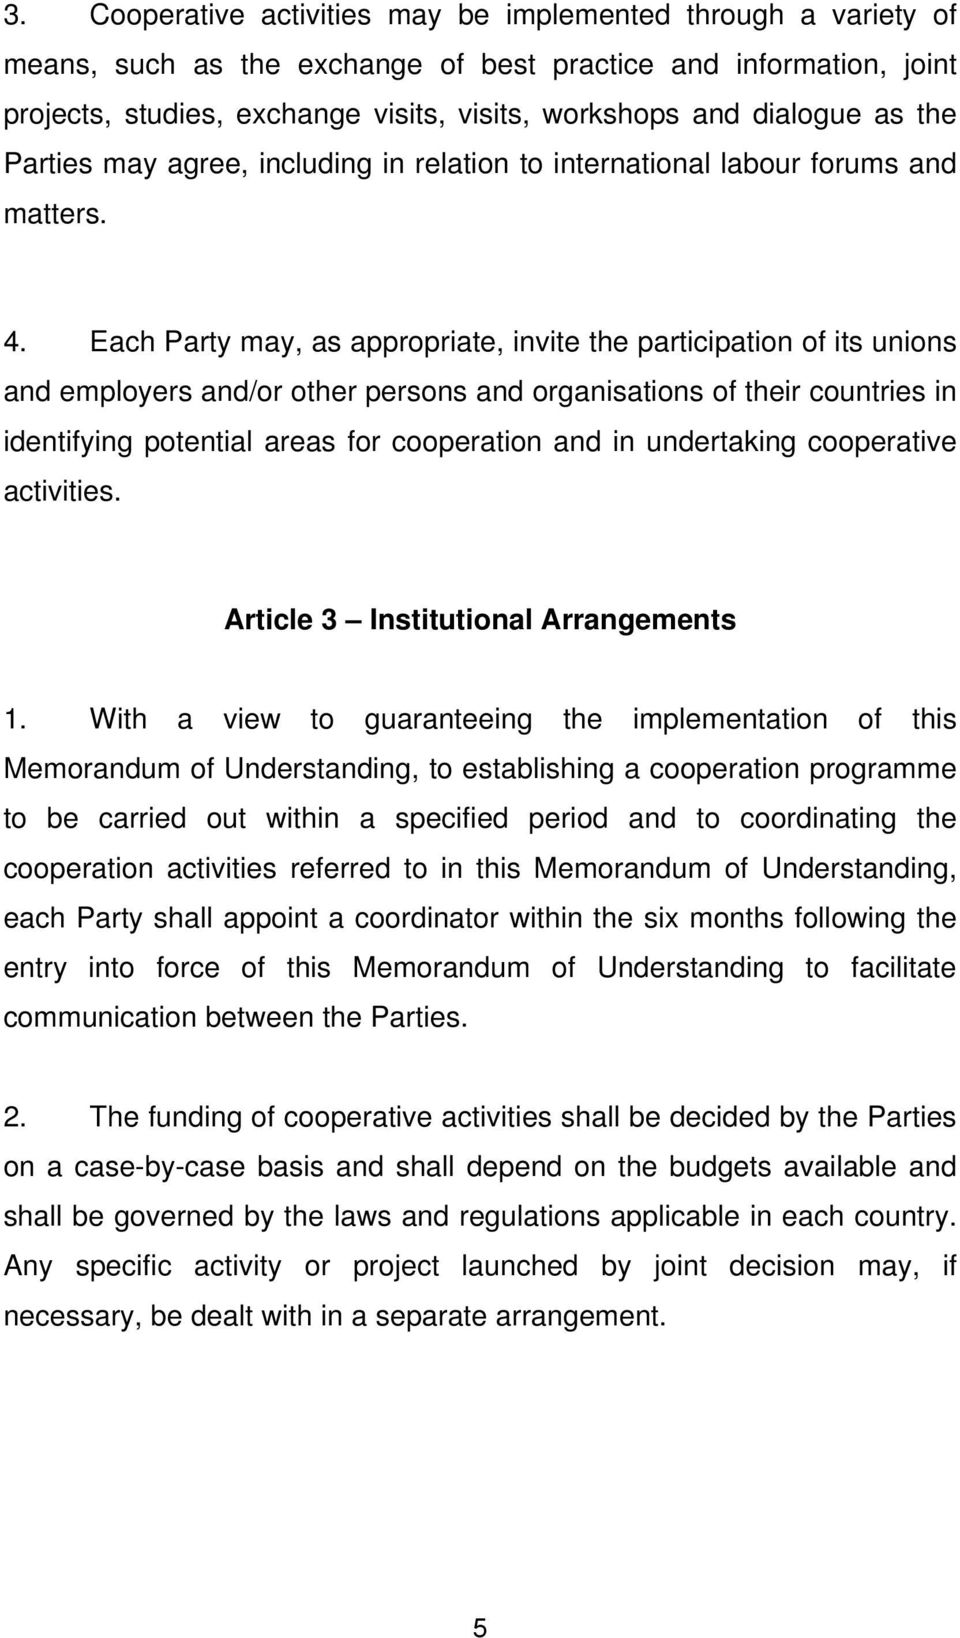 Each Party may, as appropriate, invite the participation of its unions and employers and/or other persons and organisations of their countries in identifying potential areas for cooperation and in